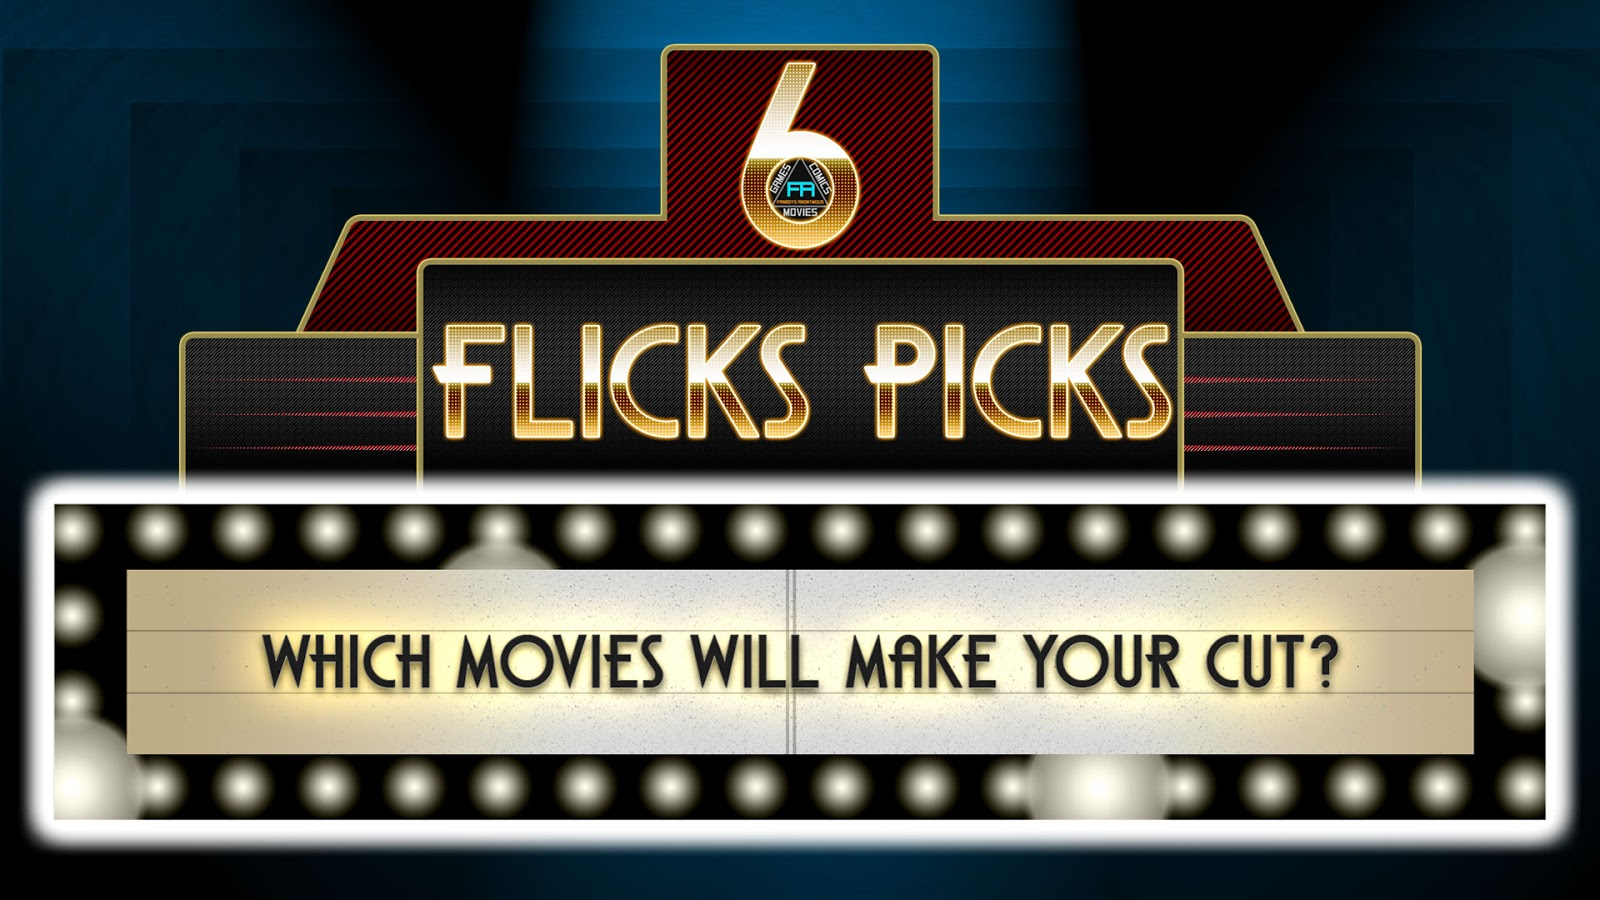 What movies are coming out June 2016 6 Flicks Picks